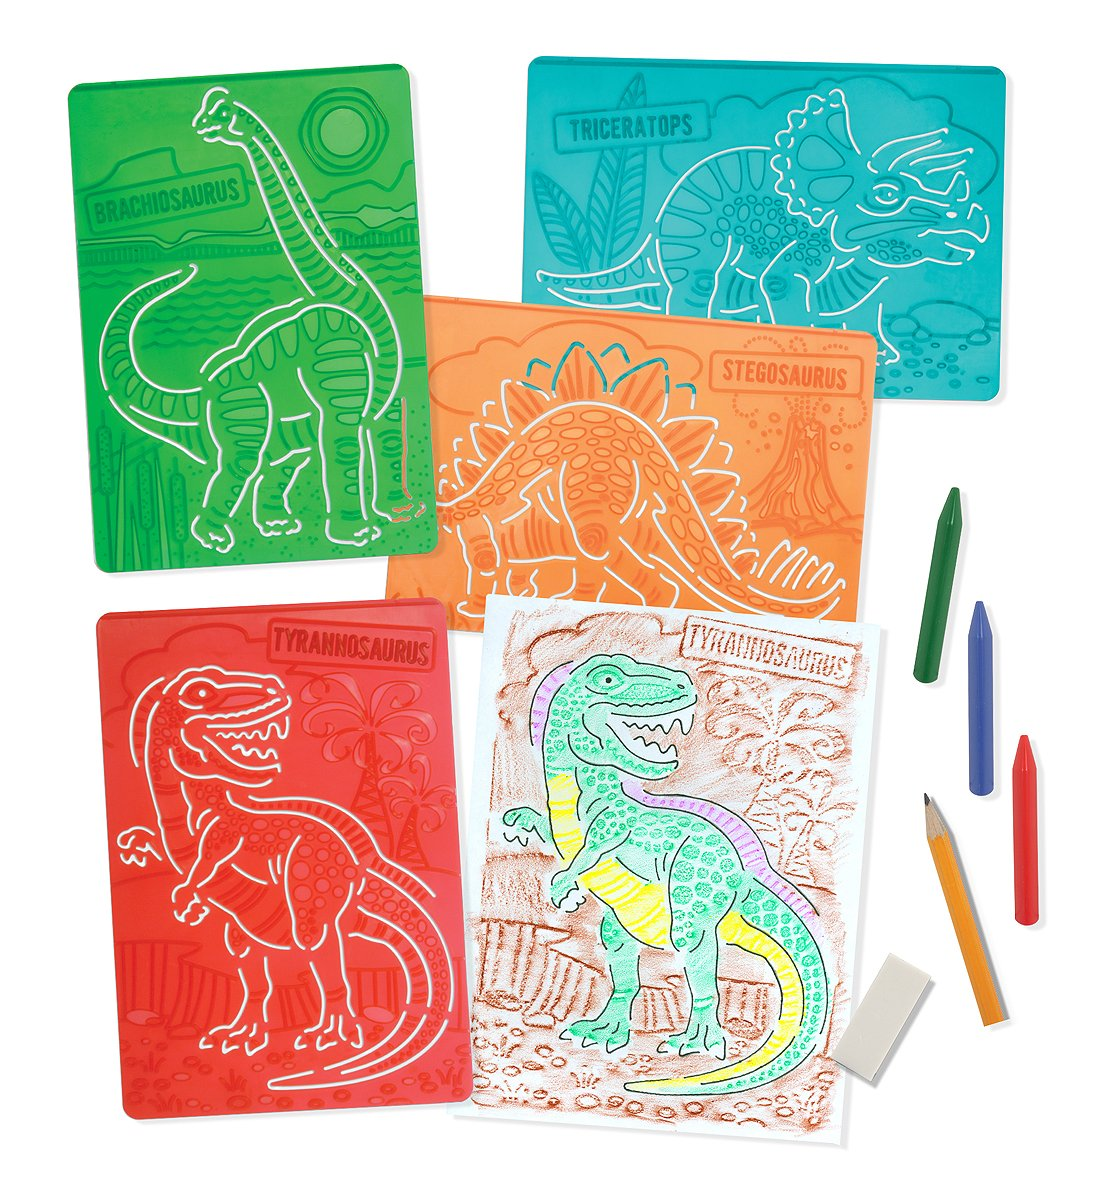 Melissa & Doug Textured Stencils - Dinosaurs, 4-Pack of Stencil-and-Rubbing Plates